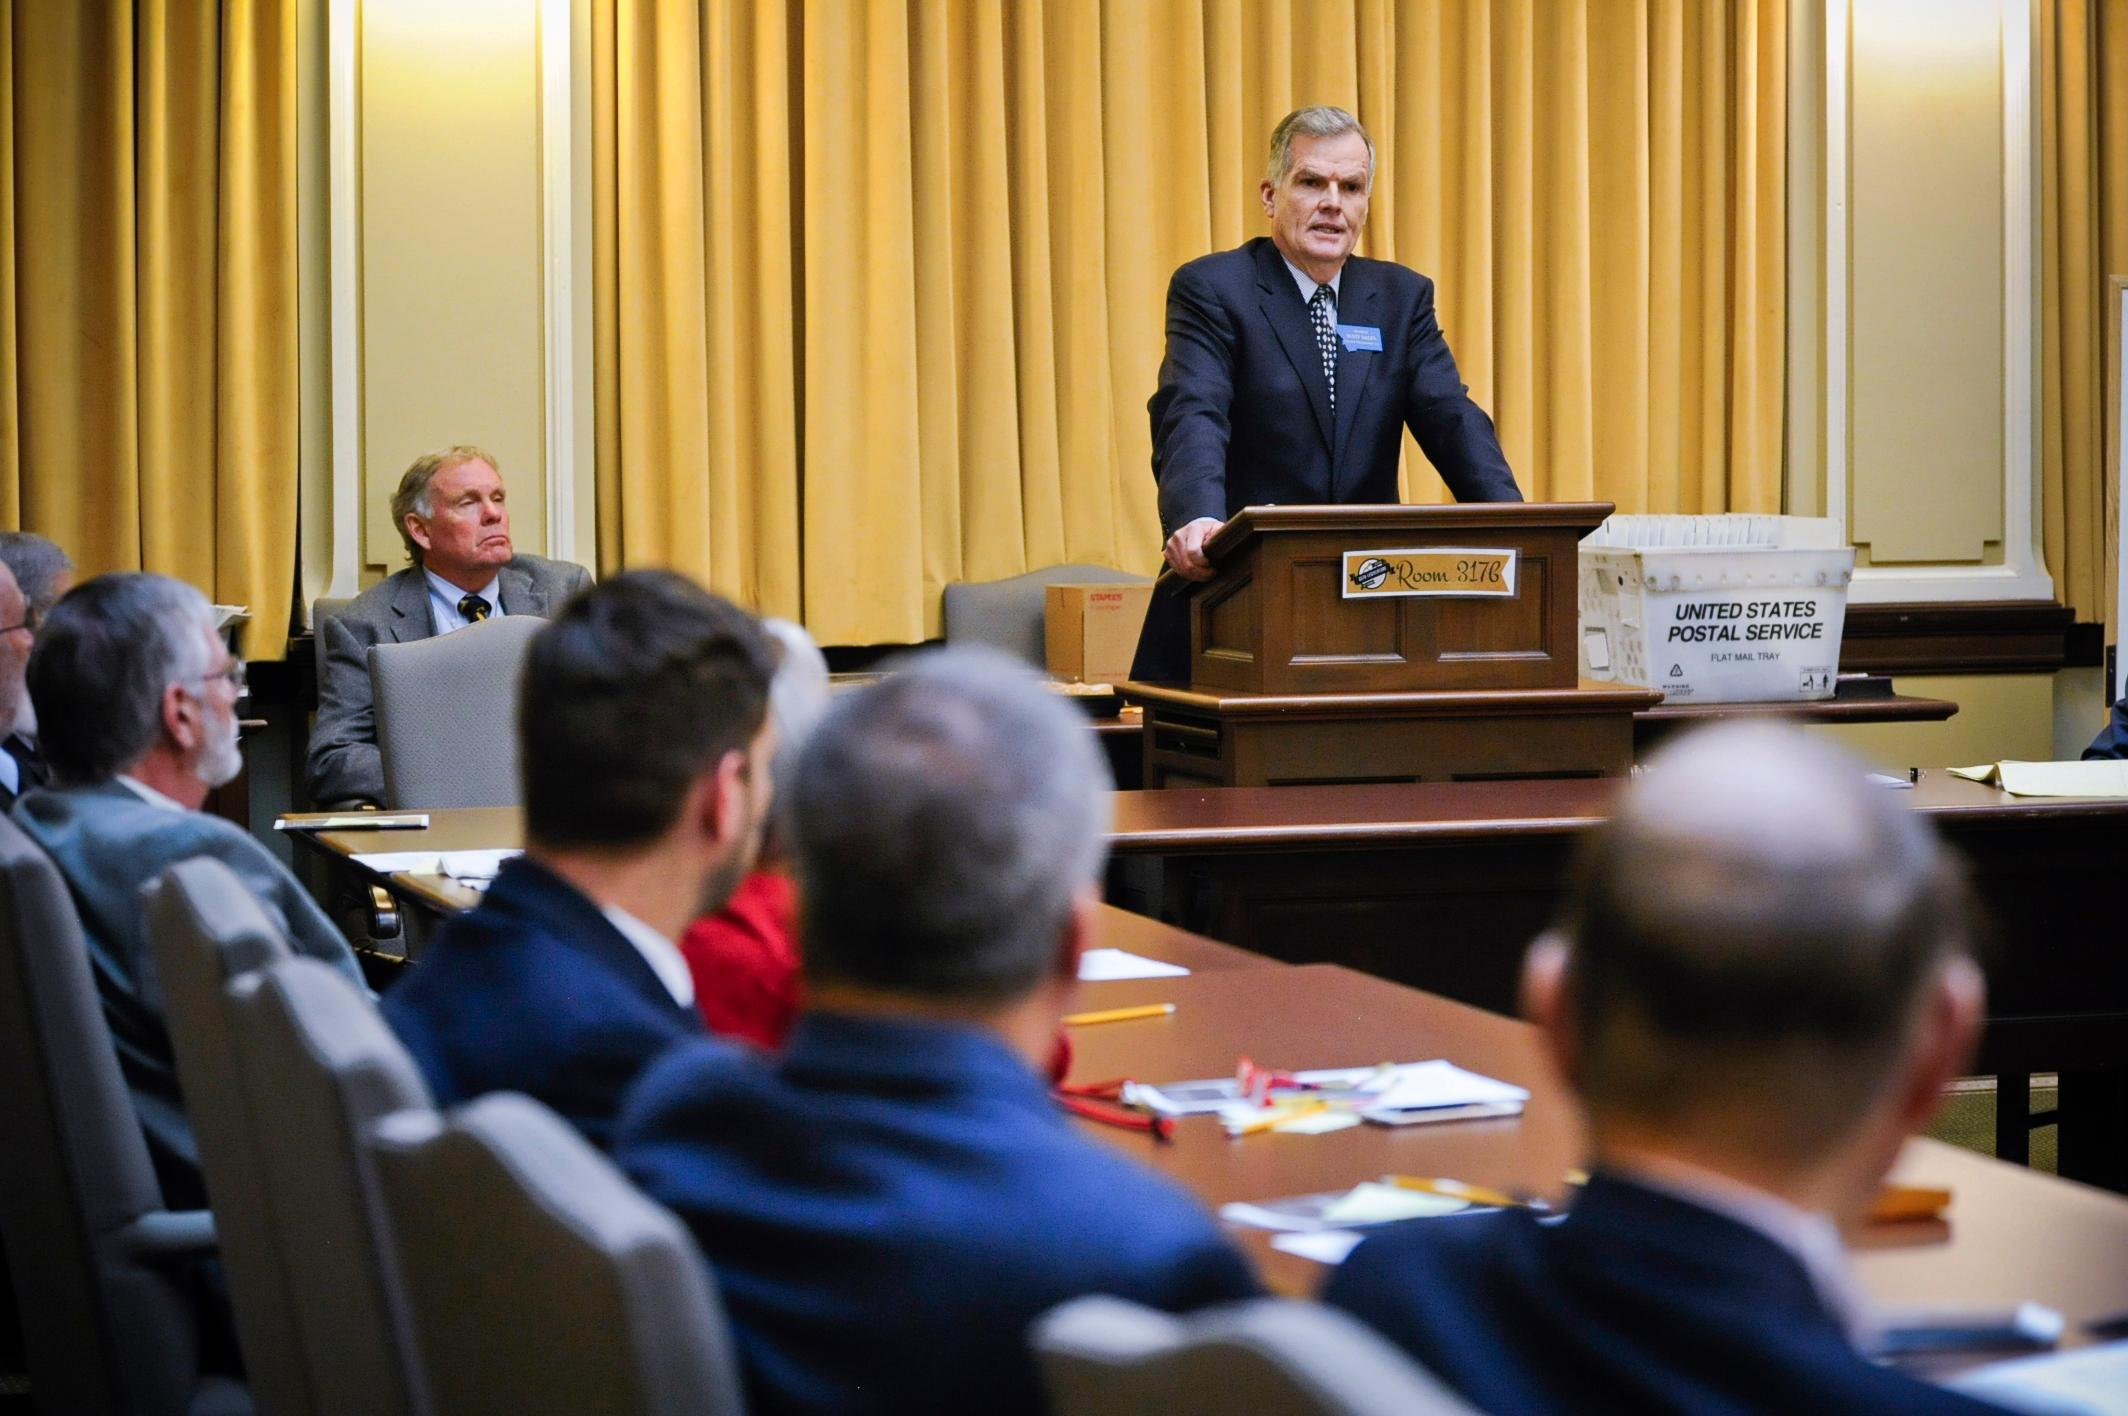 FILE - In this Nov. 14, 2018 file photo Senate President Scott Sales, R-Bozeman, addresses the Senate Republican caucus at the State Capitol in Helena, Mont. (Thom Bridge/Independent Record via AP, File)